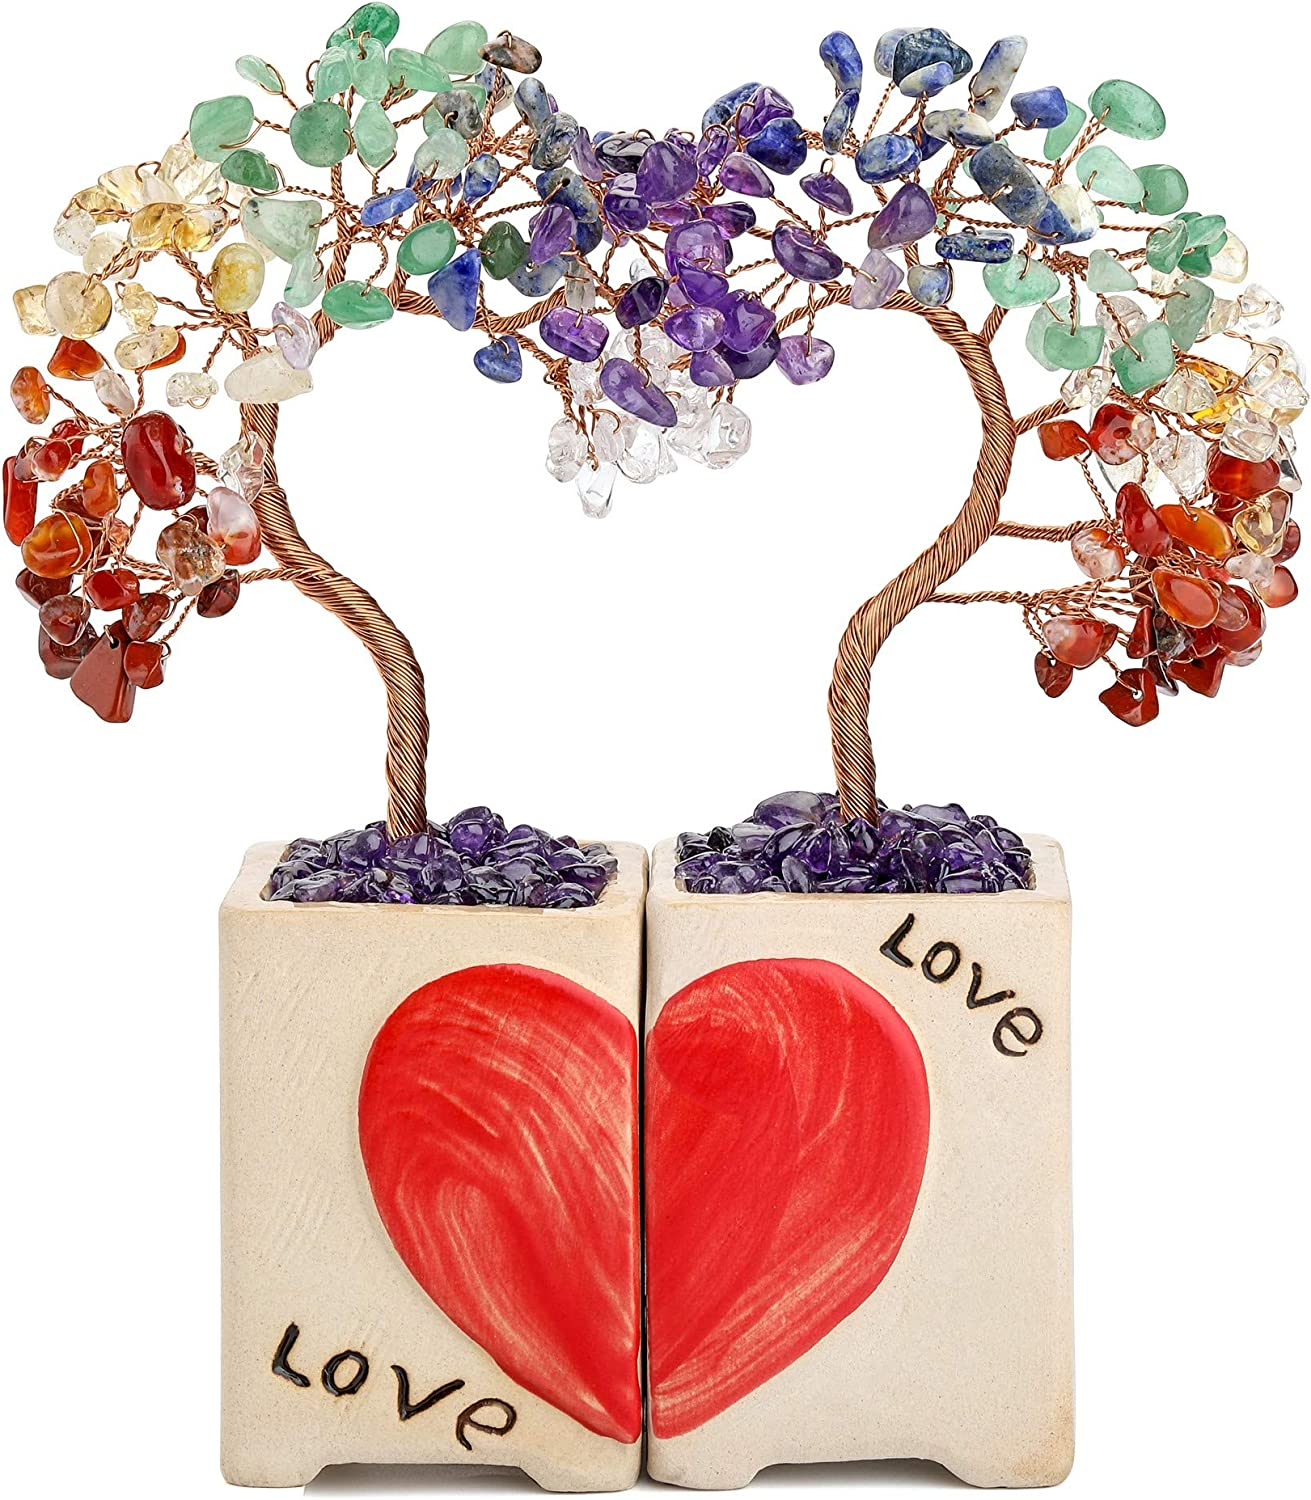 Top Plaza 2 Pcs 7 Chakra Healing Crystals Stones Tree Love Heart Wedding Ceremony Decor Reiki Gemstone Home House Living Room Decoration Gift for Couples Lover Girlfriend Boyfriend